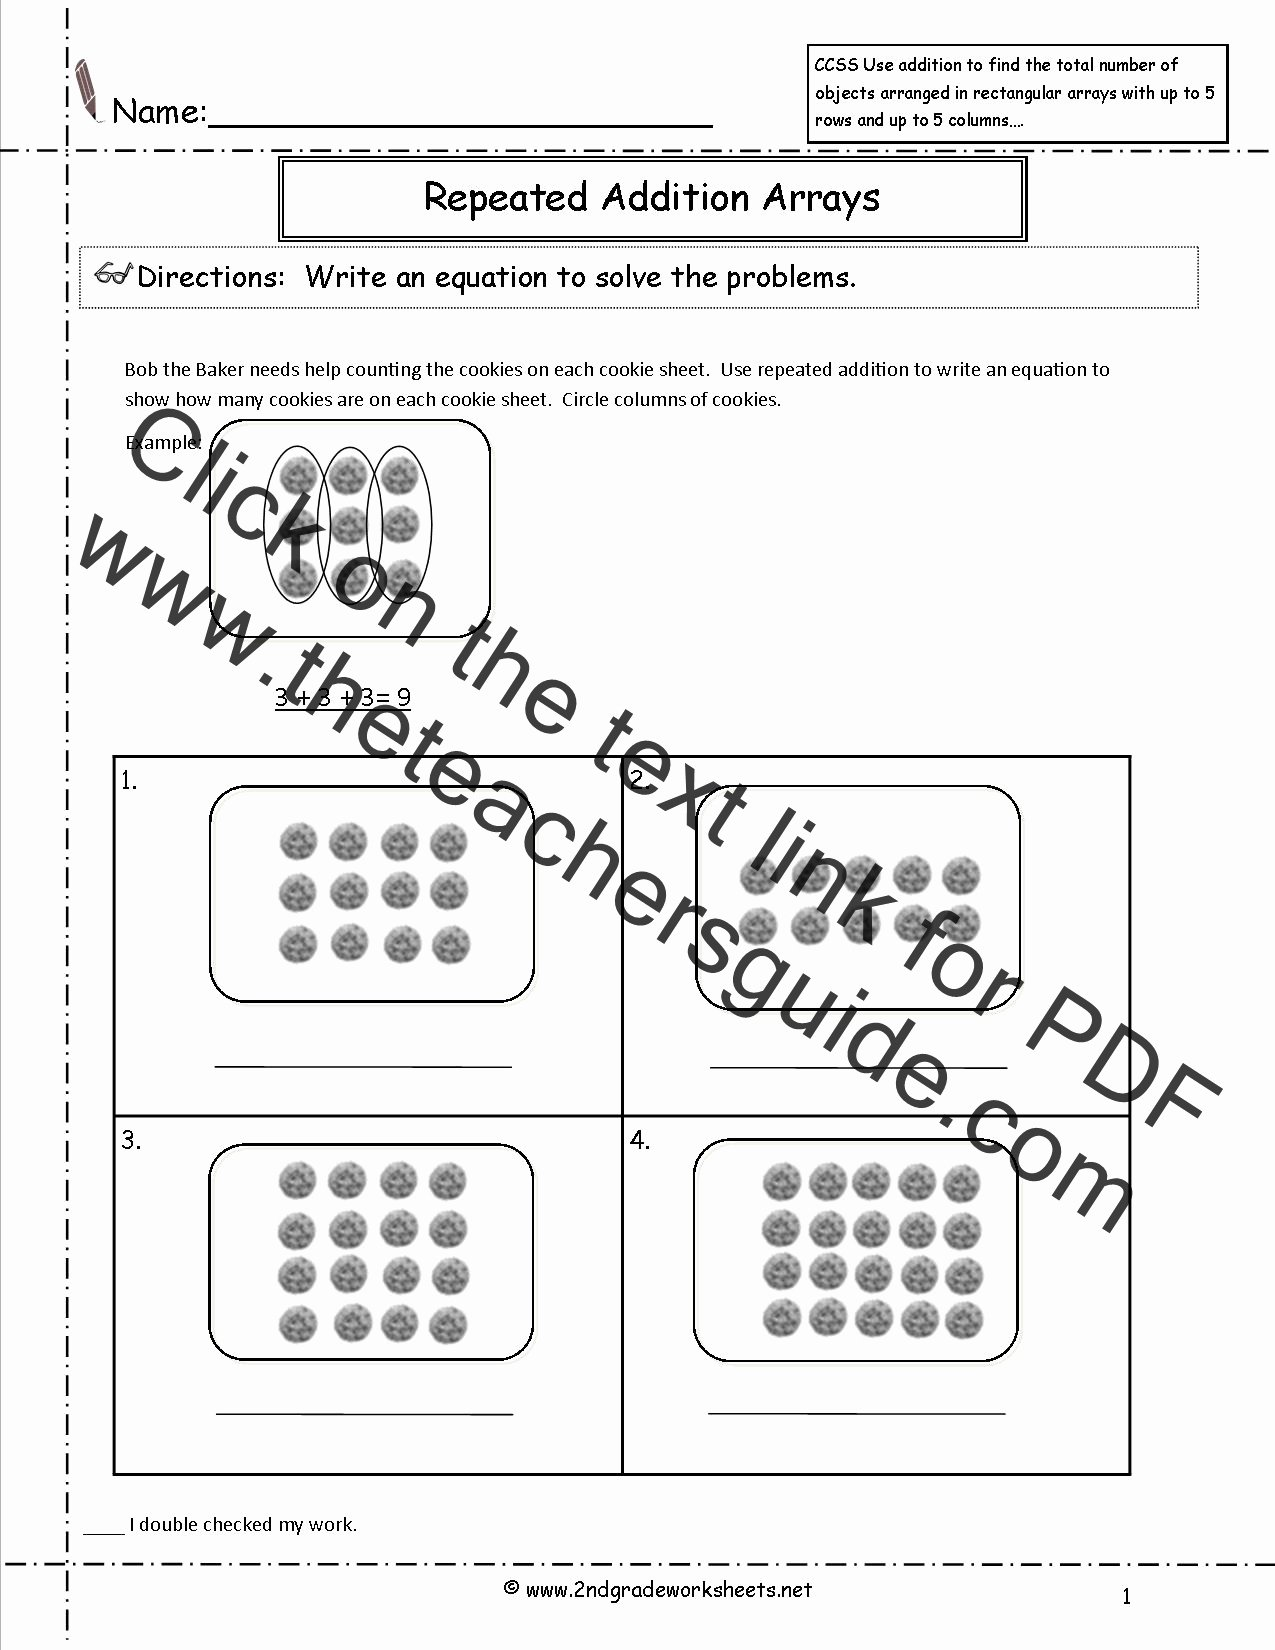 Repeated Addition Worksheets 2nd Grade New Ccss 2 Oa 4 Worksheets